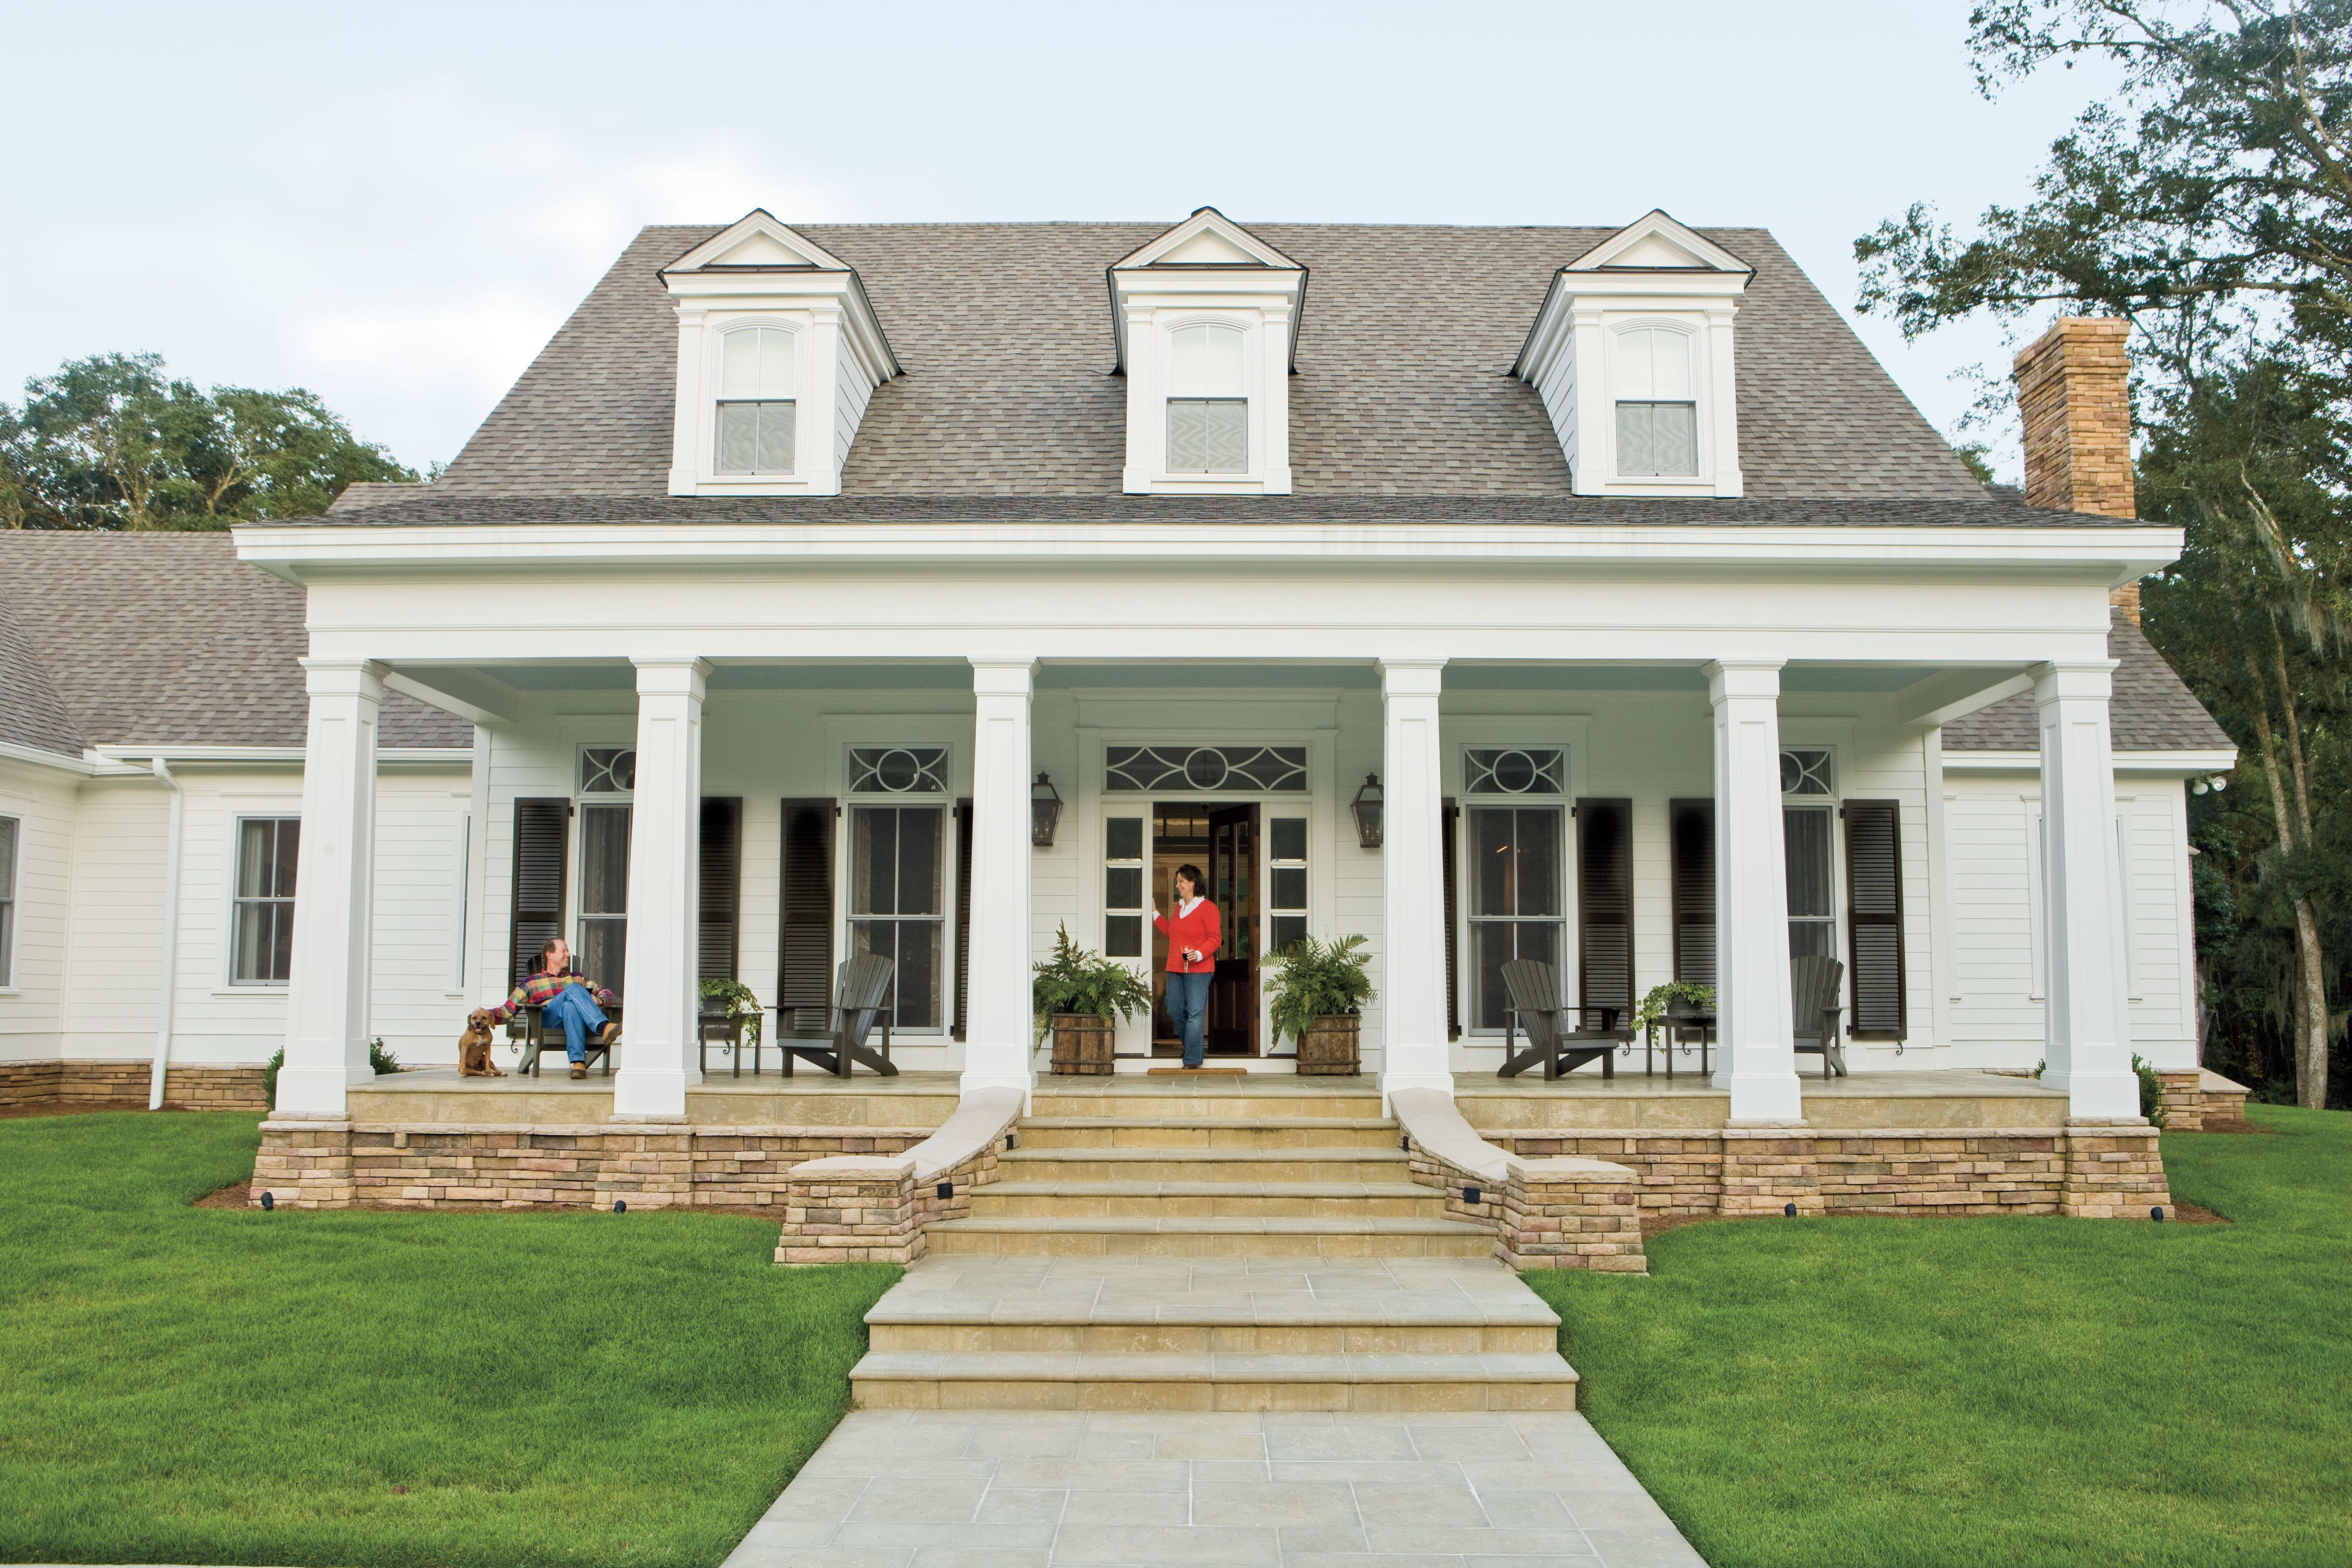 New House Timeless Character Southern House Plans House Exterior Porch Remodel